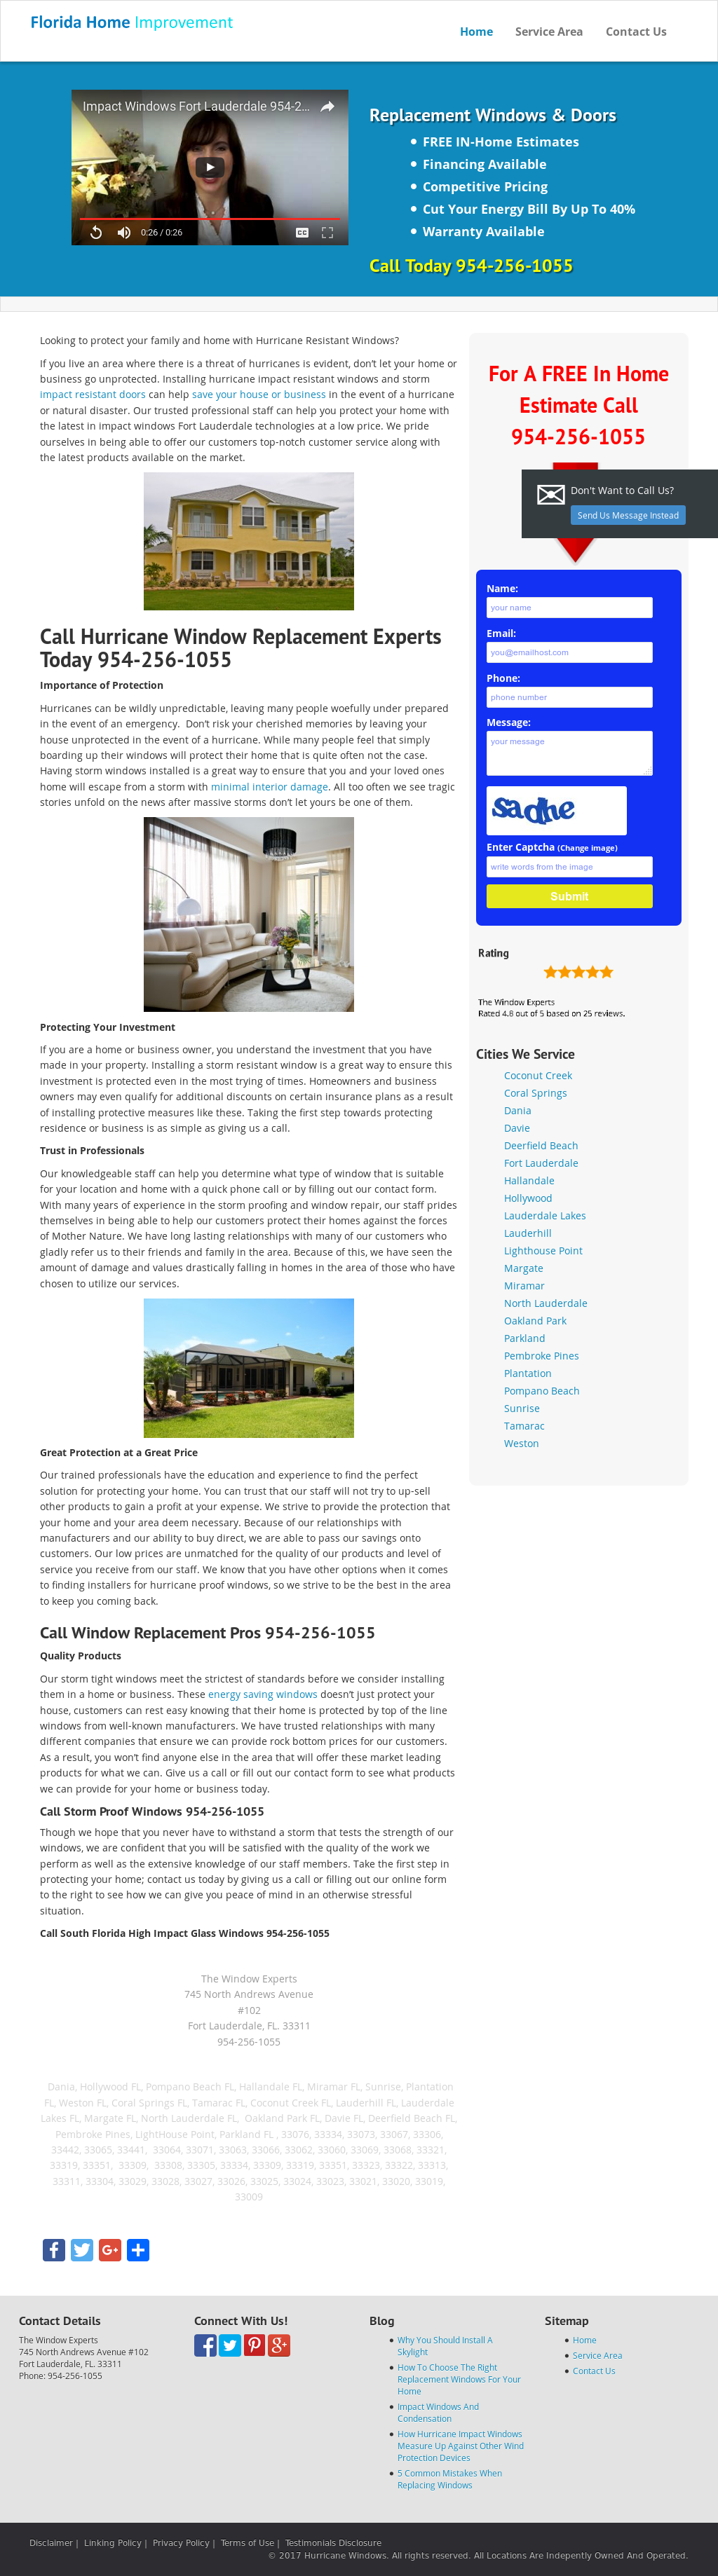 impact windows fort lauderdale broward county website history the window experts impact fort lauderdale professionals